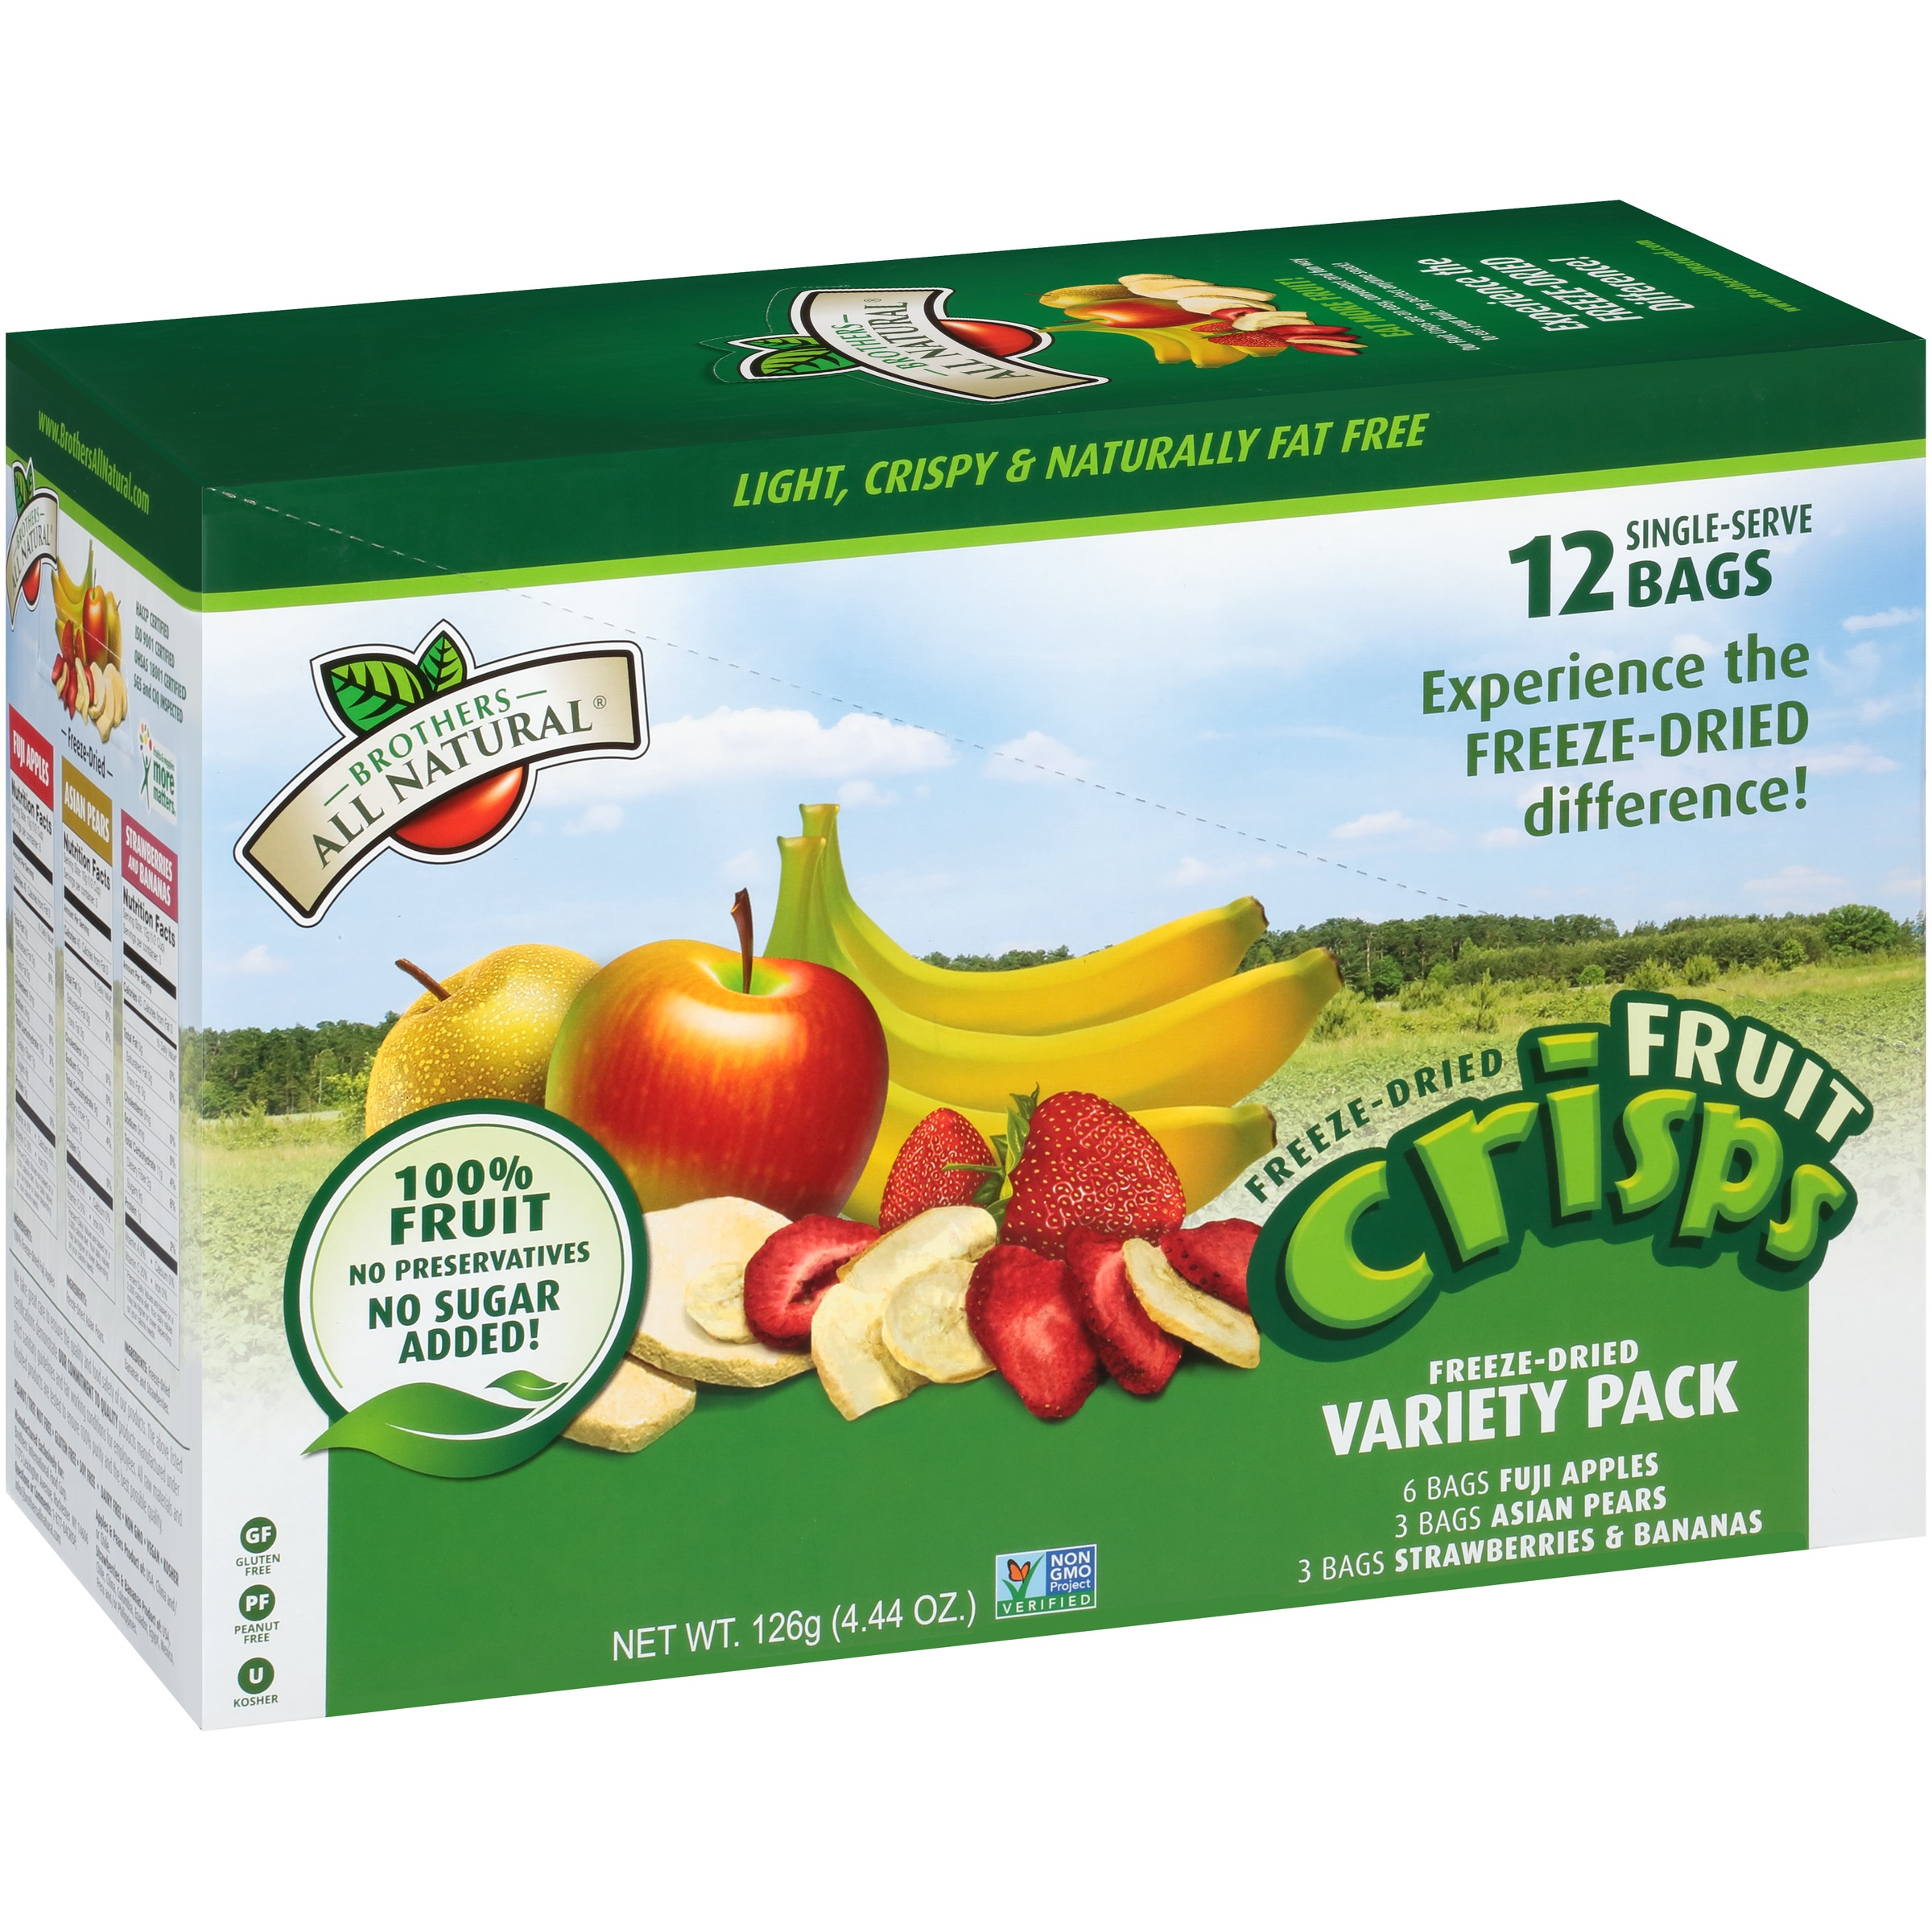 Brothers All Natural Freeze-Dried Fruit Crisps, Variety Pack, 4.44 Oz, 12 Ct by Brothers International Food Corp.